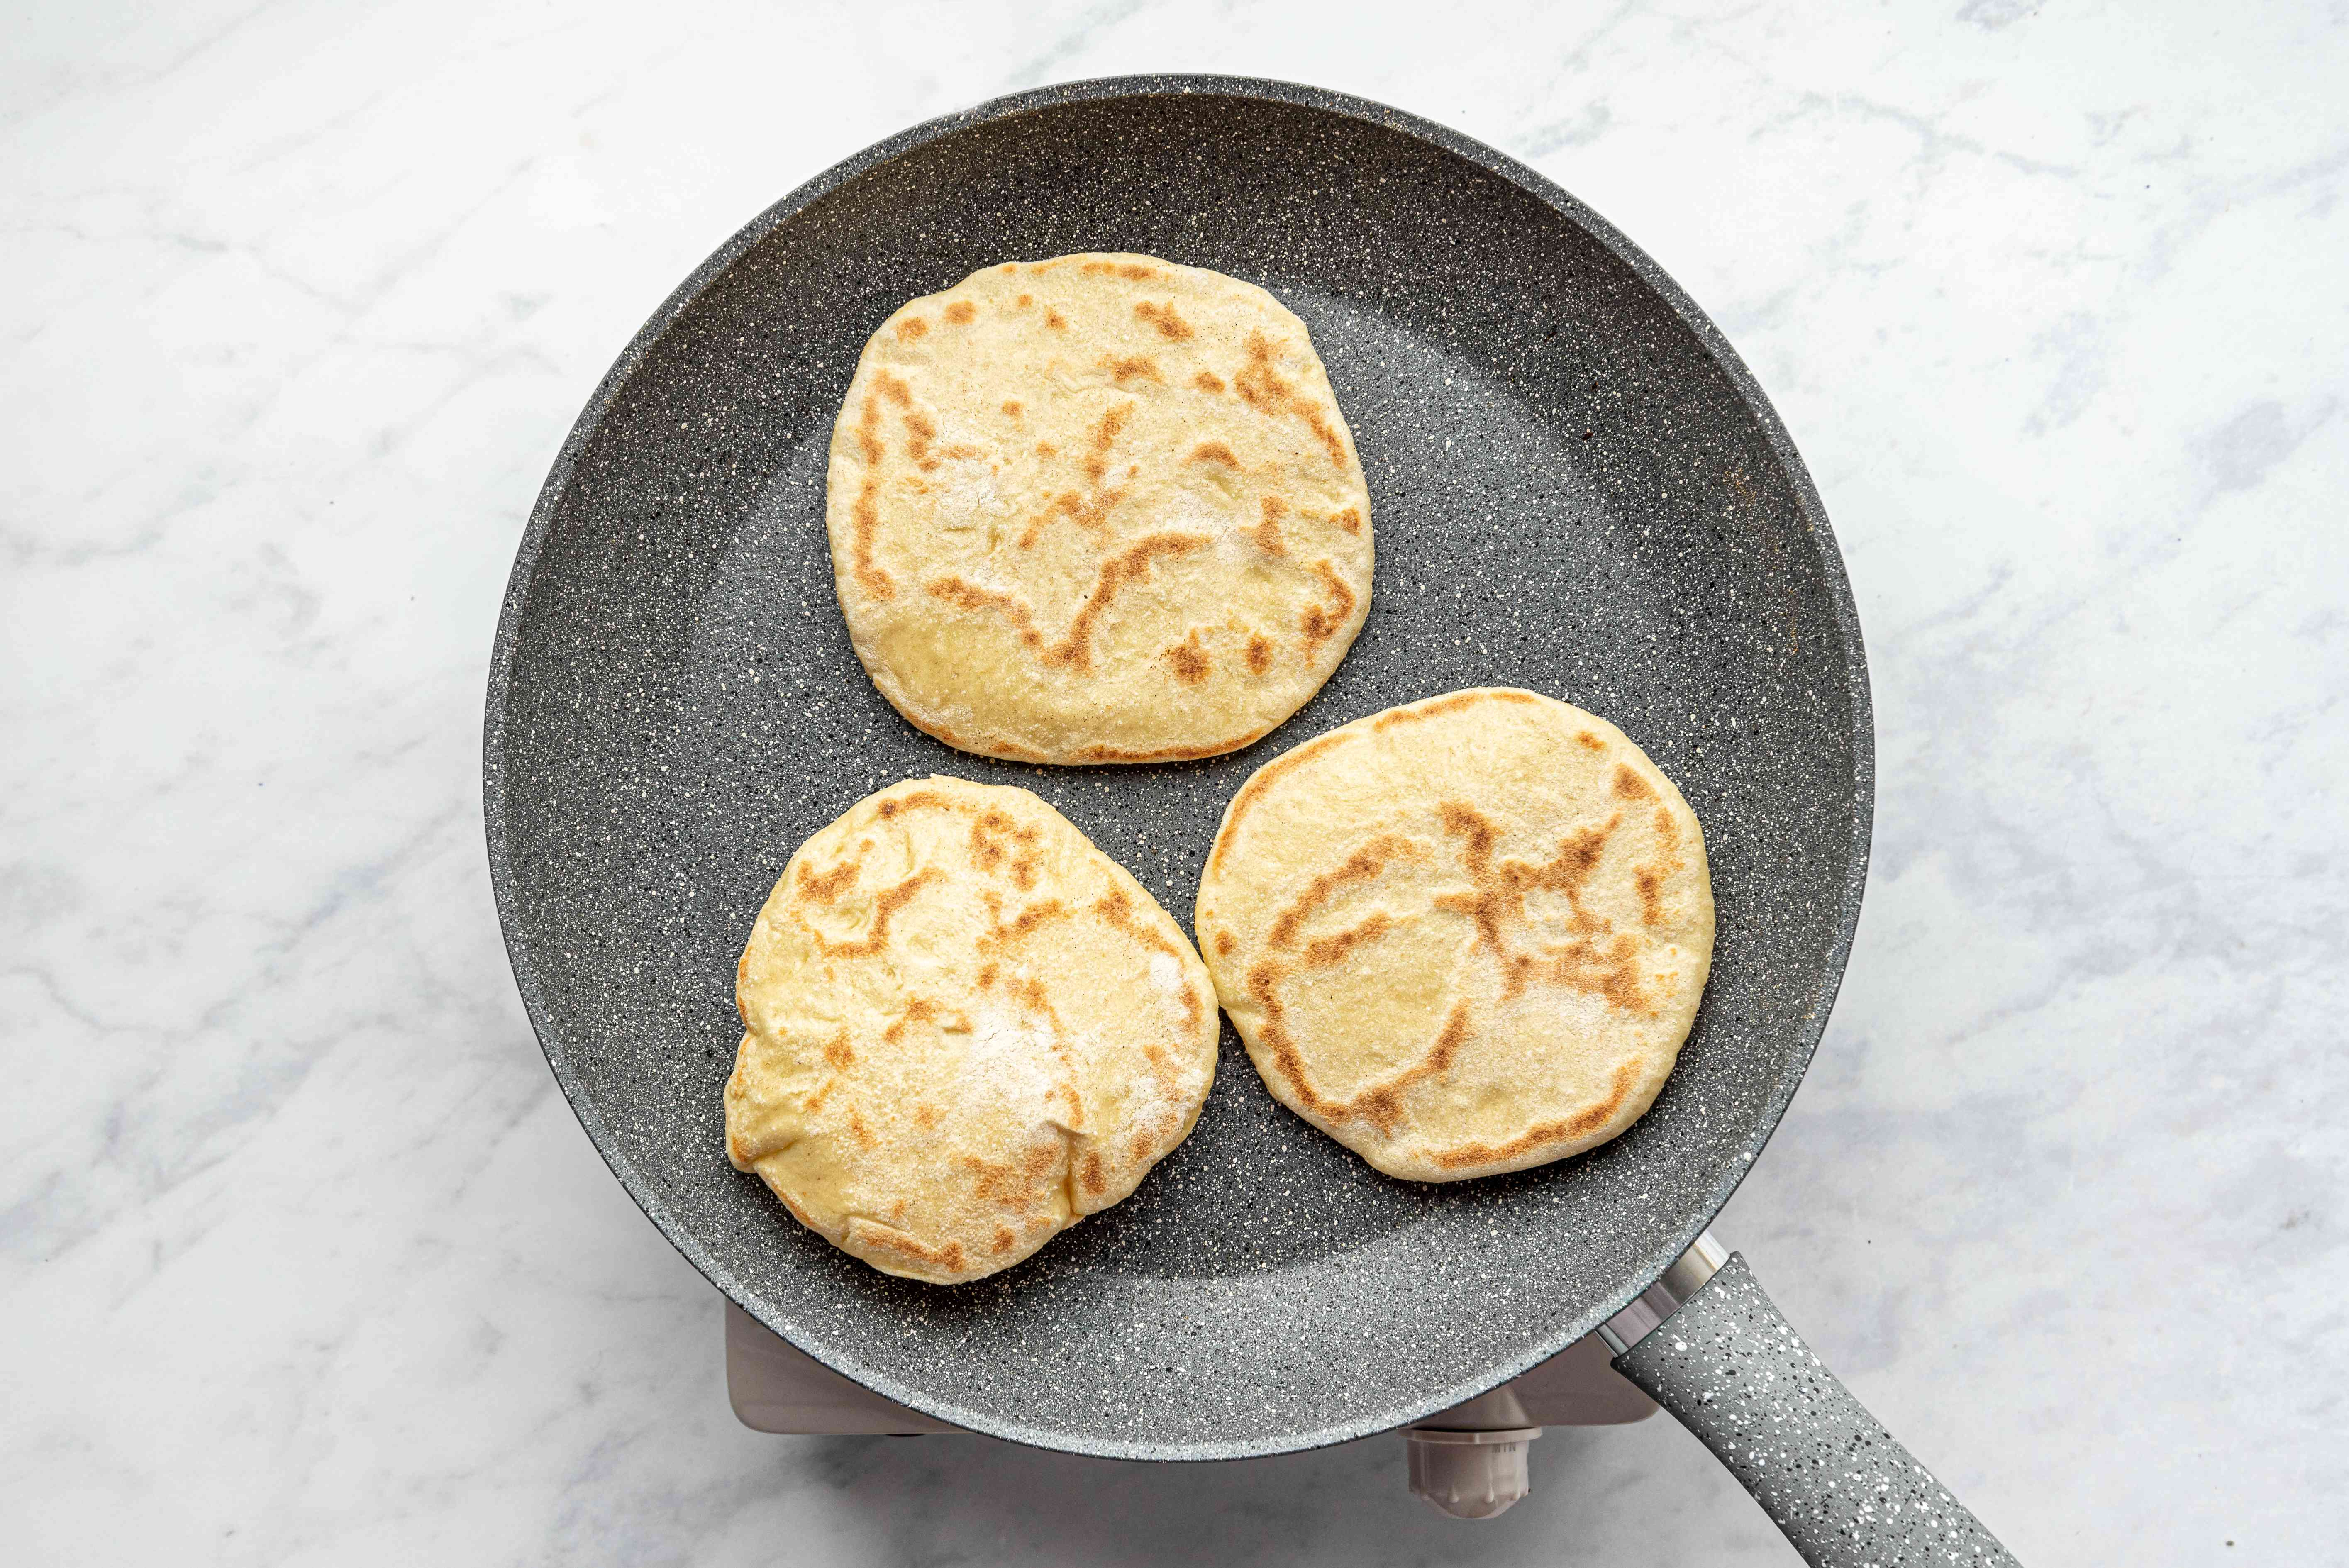 pita bread cooking in a skillet